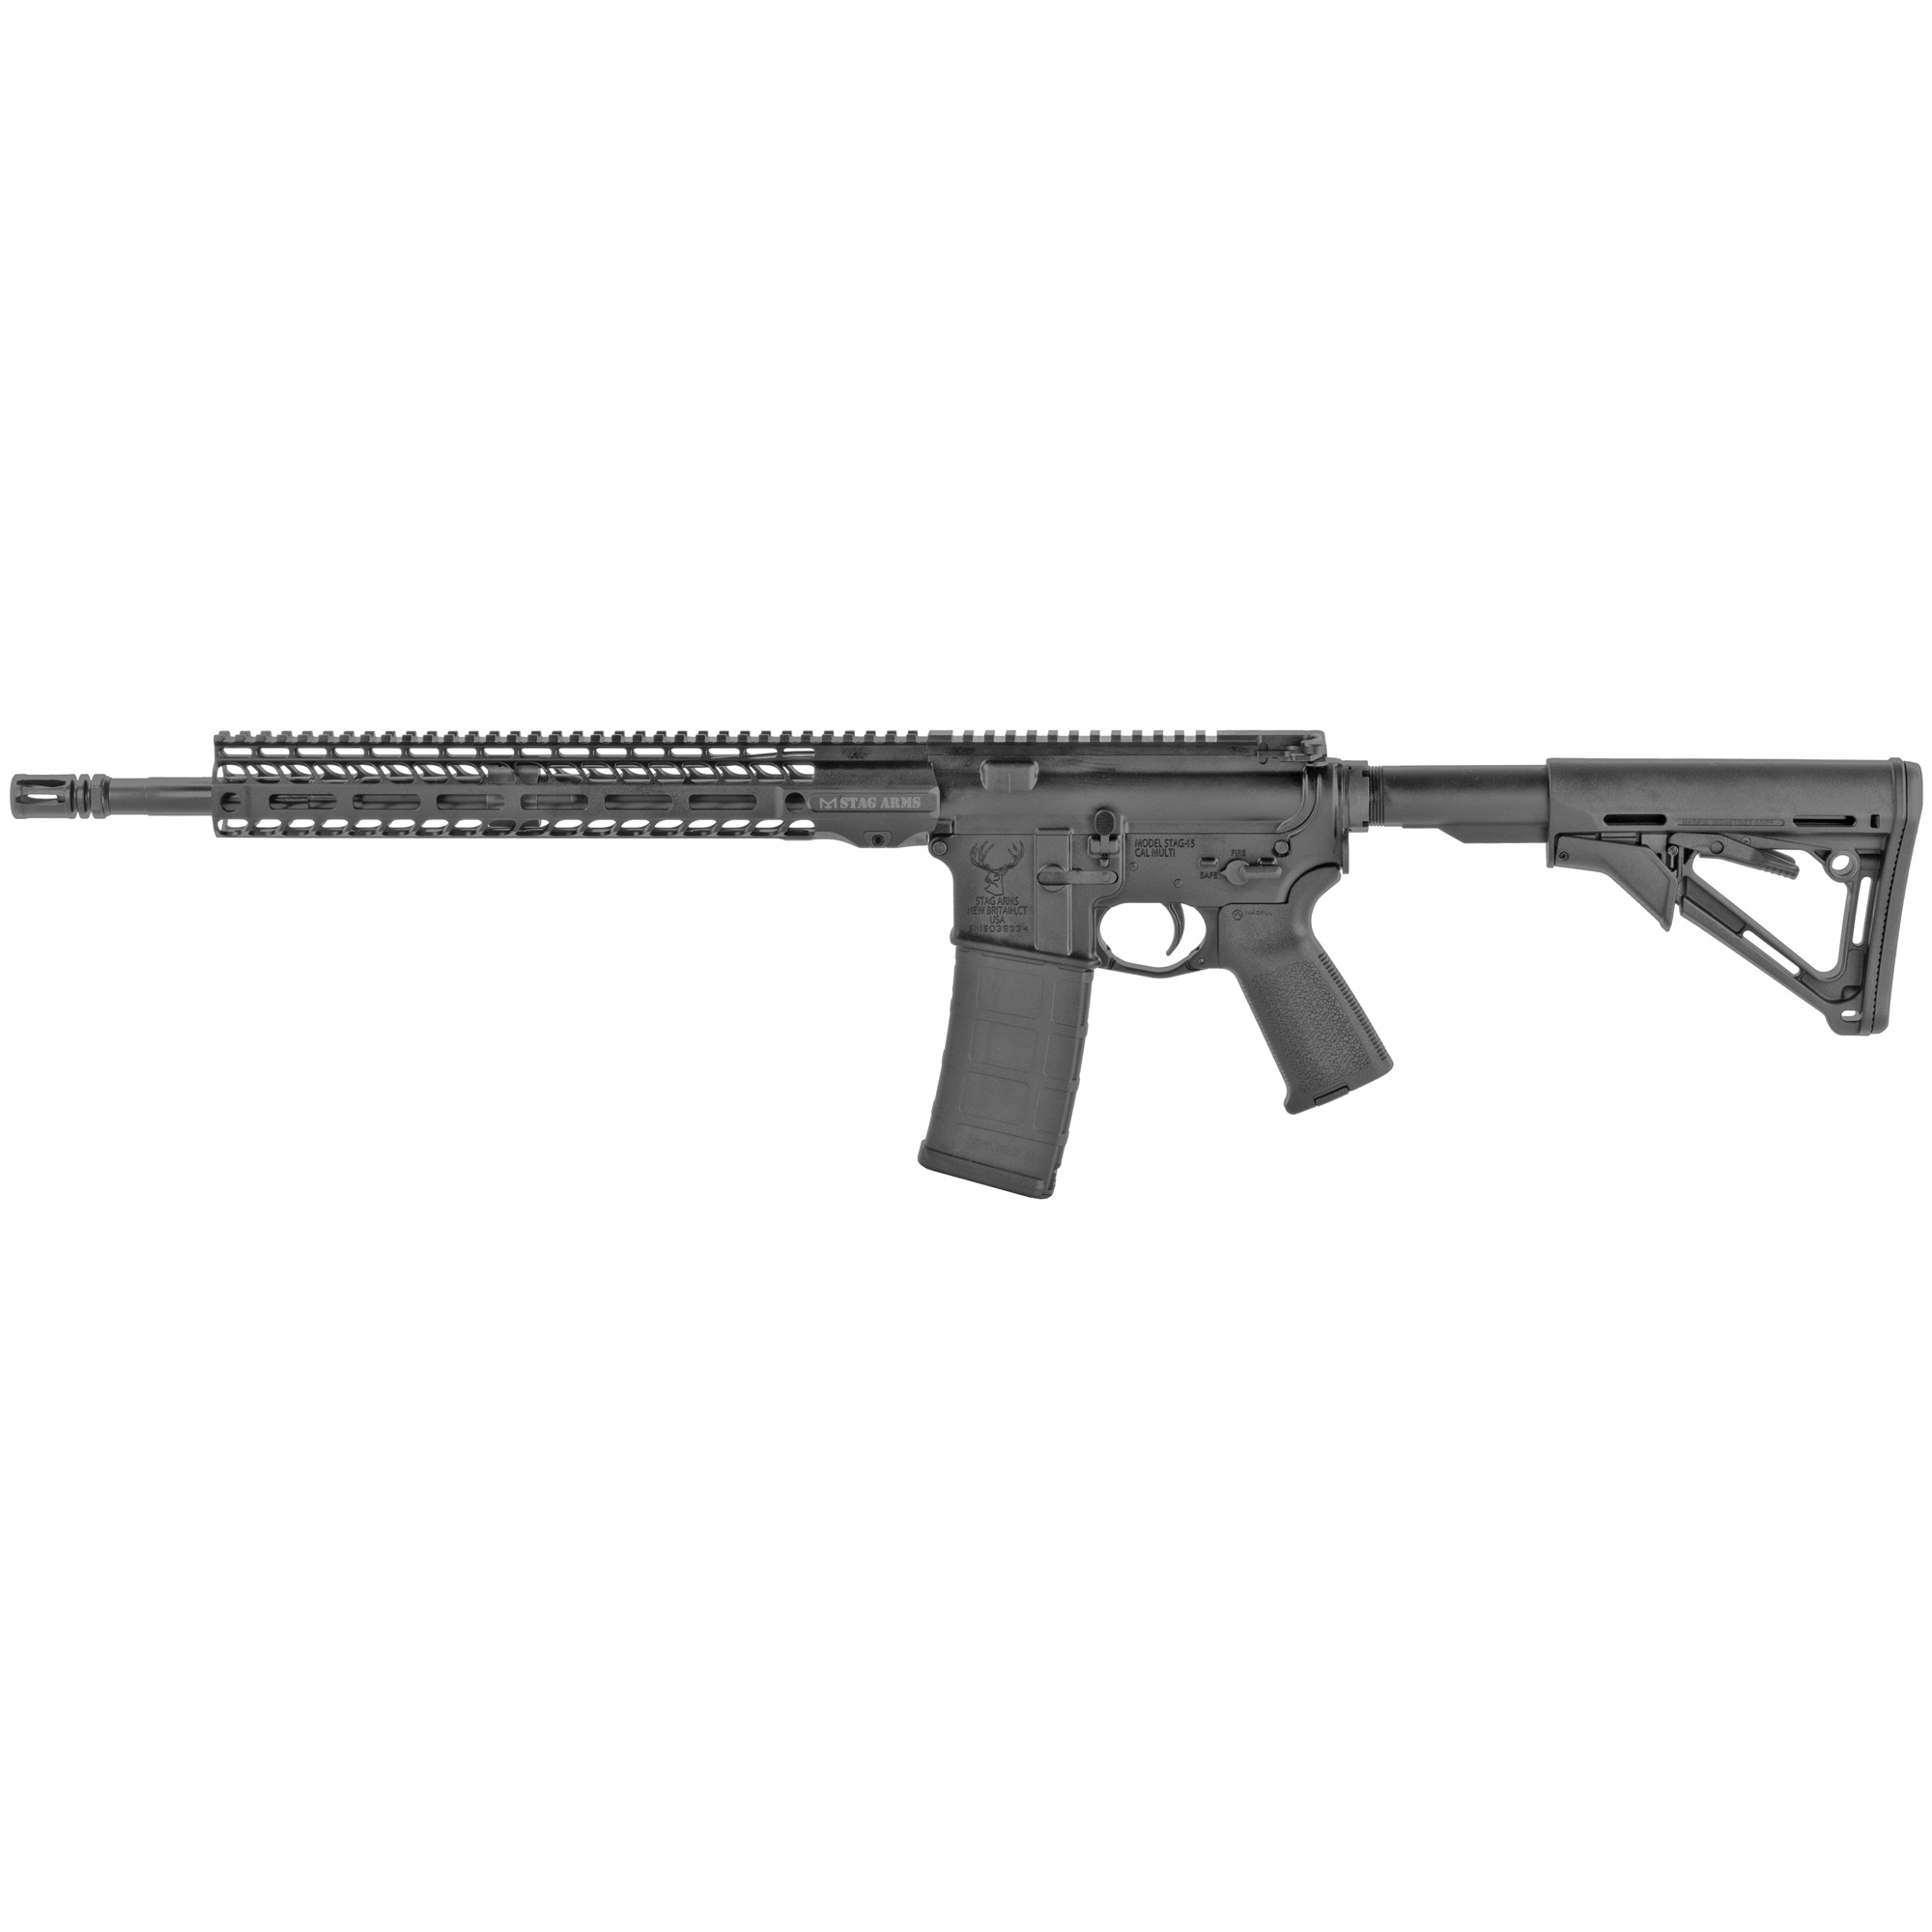 "The Stag 15 Tactical is the first rifle in the Stag 15 lineup to feature the Stag 15 M-LOK SL 13.5"" Handguard. Built around a 16"" 1/7 twist chrome lined barrel"" the Stag 15 Tactical has an A2 Flash Hider to reduce muzzle flash. The carbine-length gas system provides reliability under any condition and is combined with a low profile gas block."